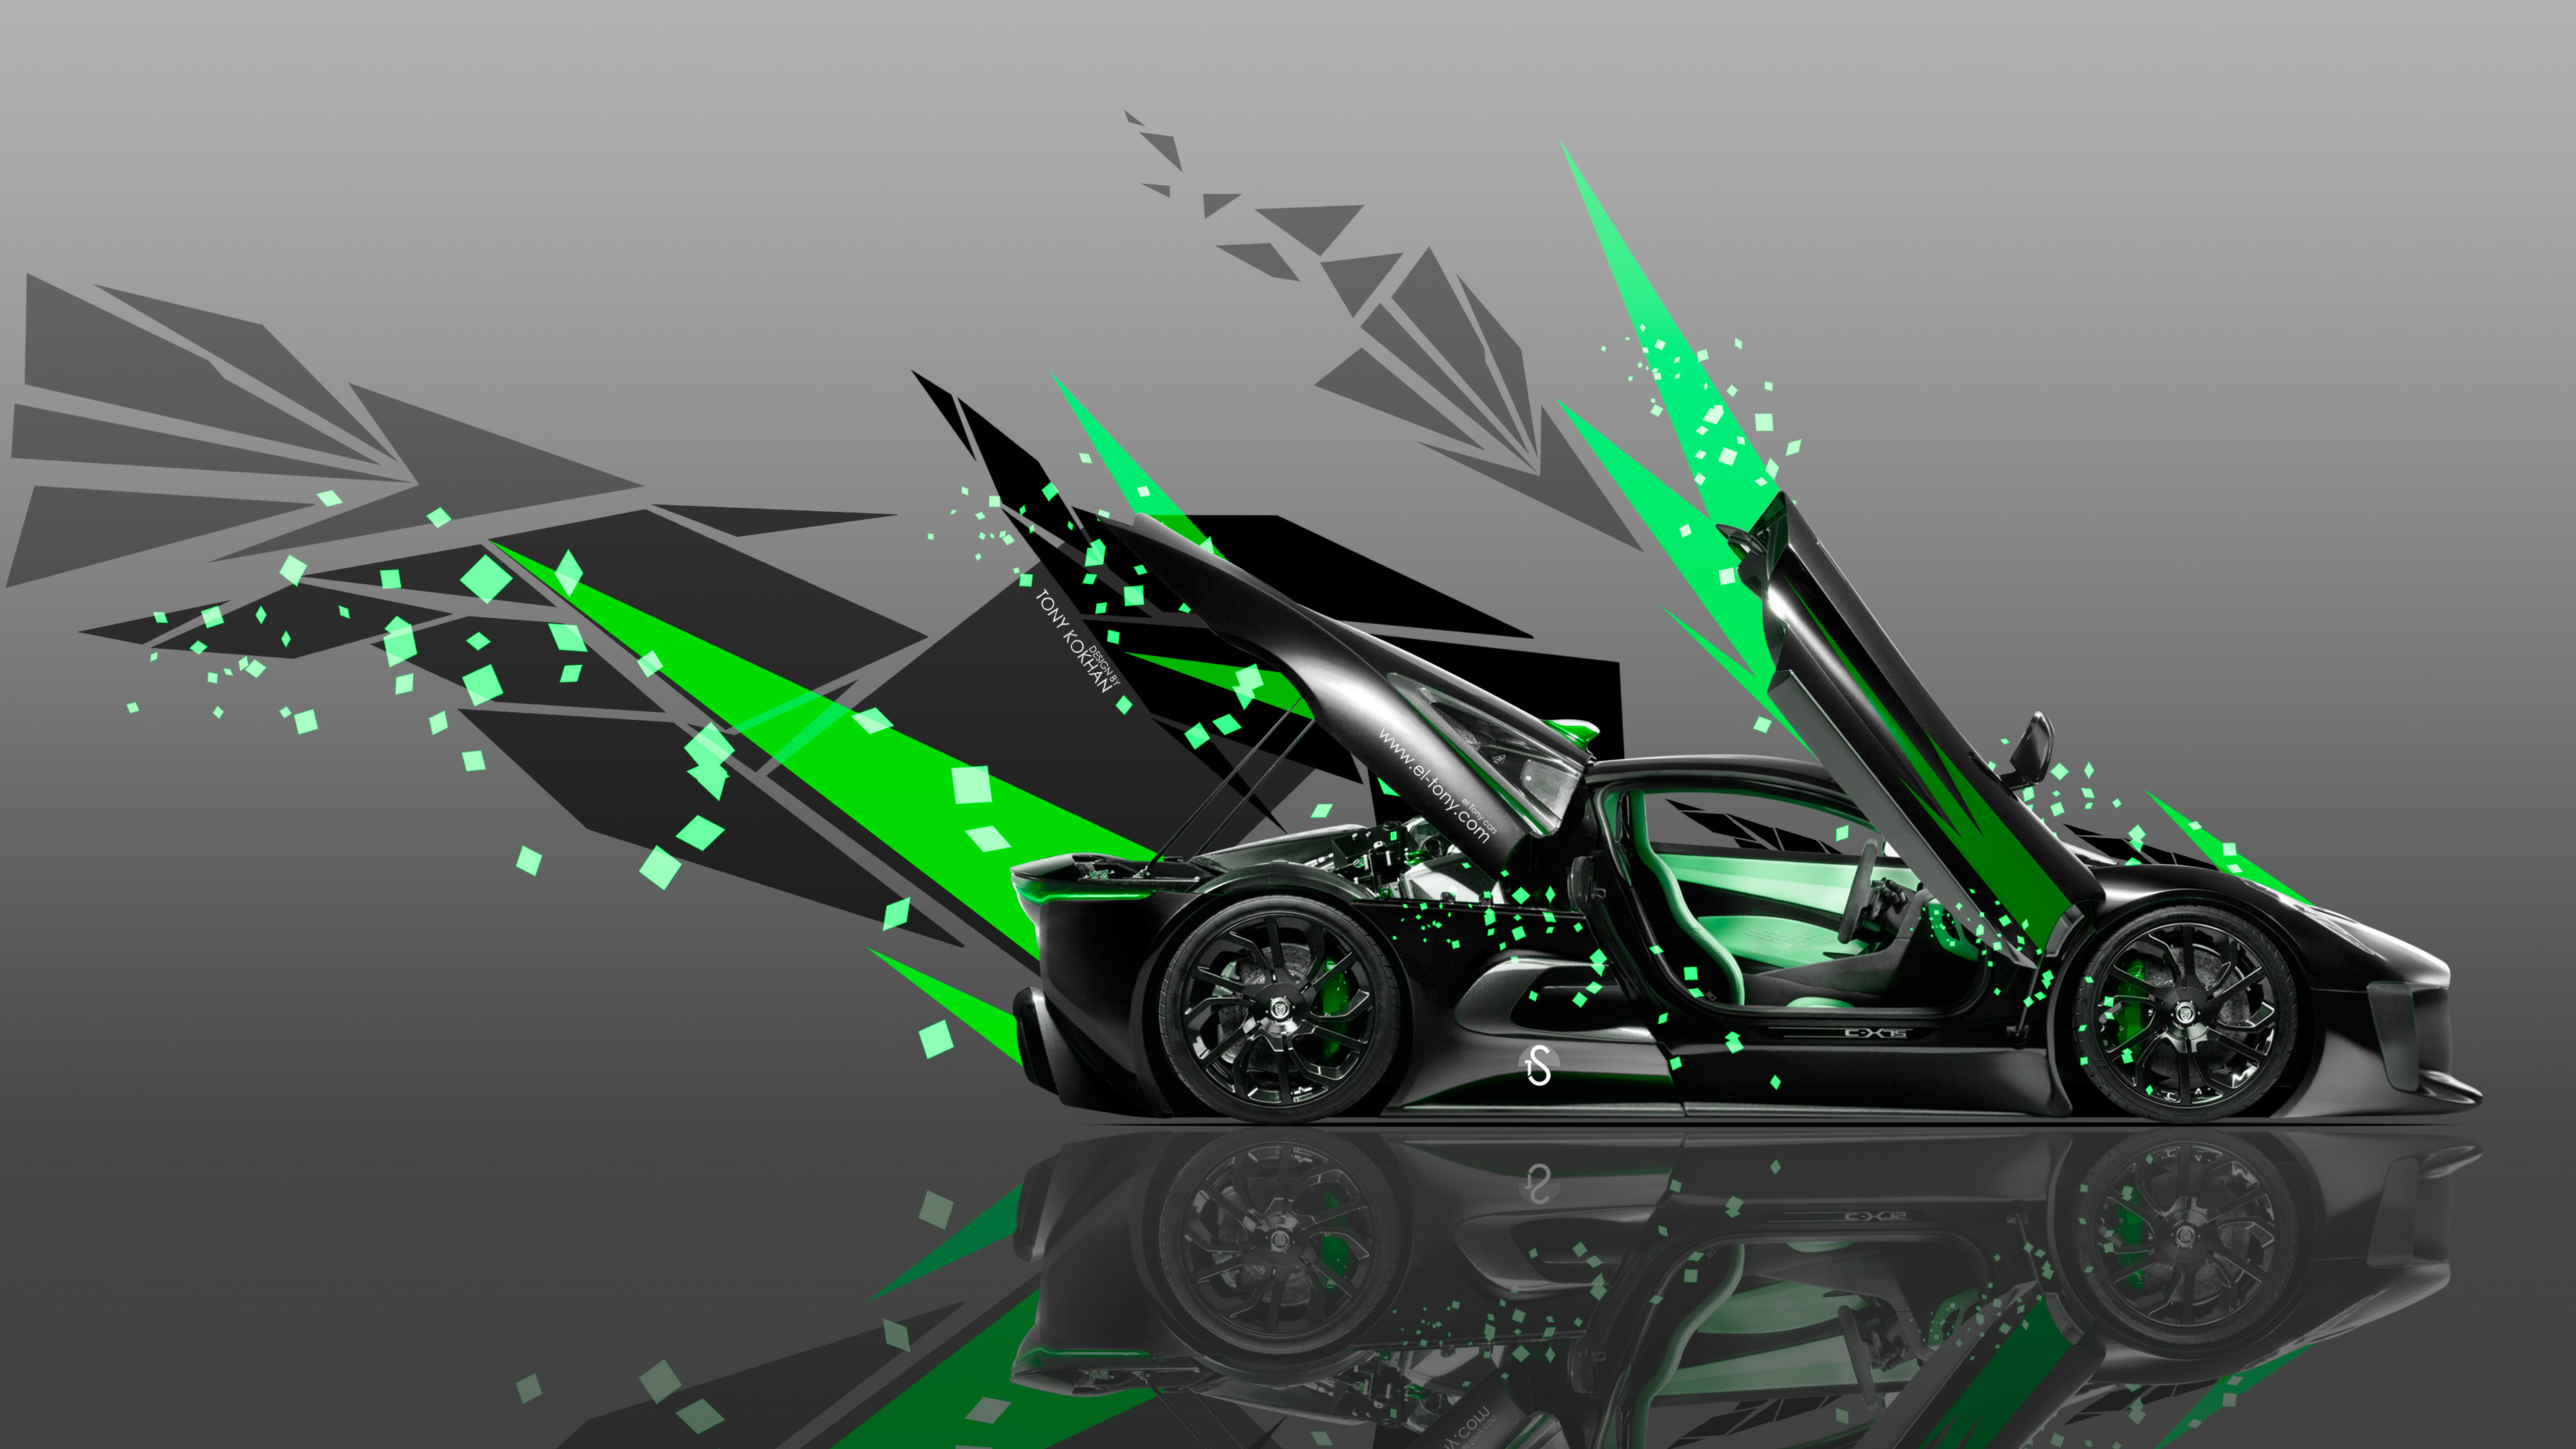 Transformers Fall Of Cybertron Wallpaper 1920x1080 4k Jaguar C X75 Side Abstract Transformer Car 2014 El Tony